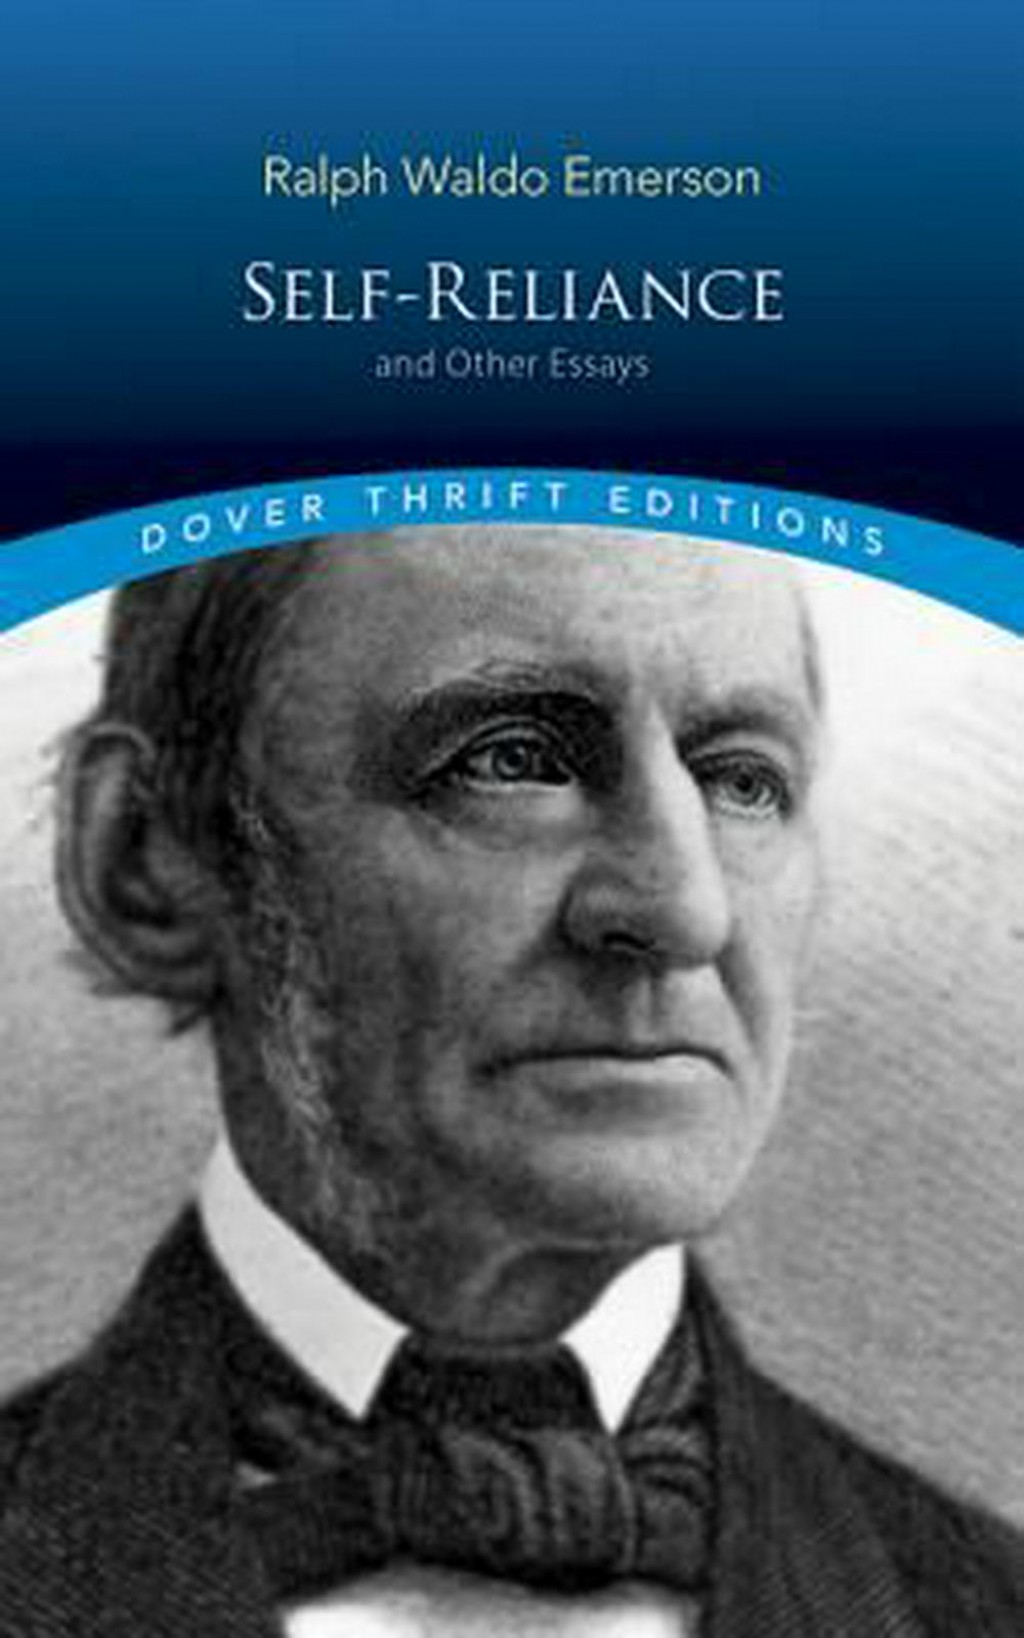 008 Essay Example 9780486277905r5c44ea15d6529 Self Reliance And Other Formidable Essays Ralph Waldo Emerson Pdf Ekşi Large